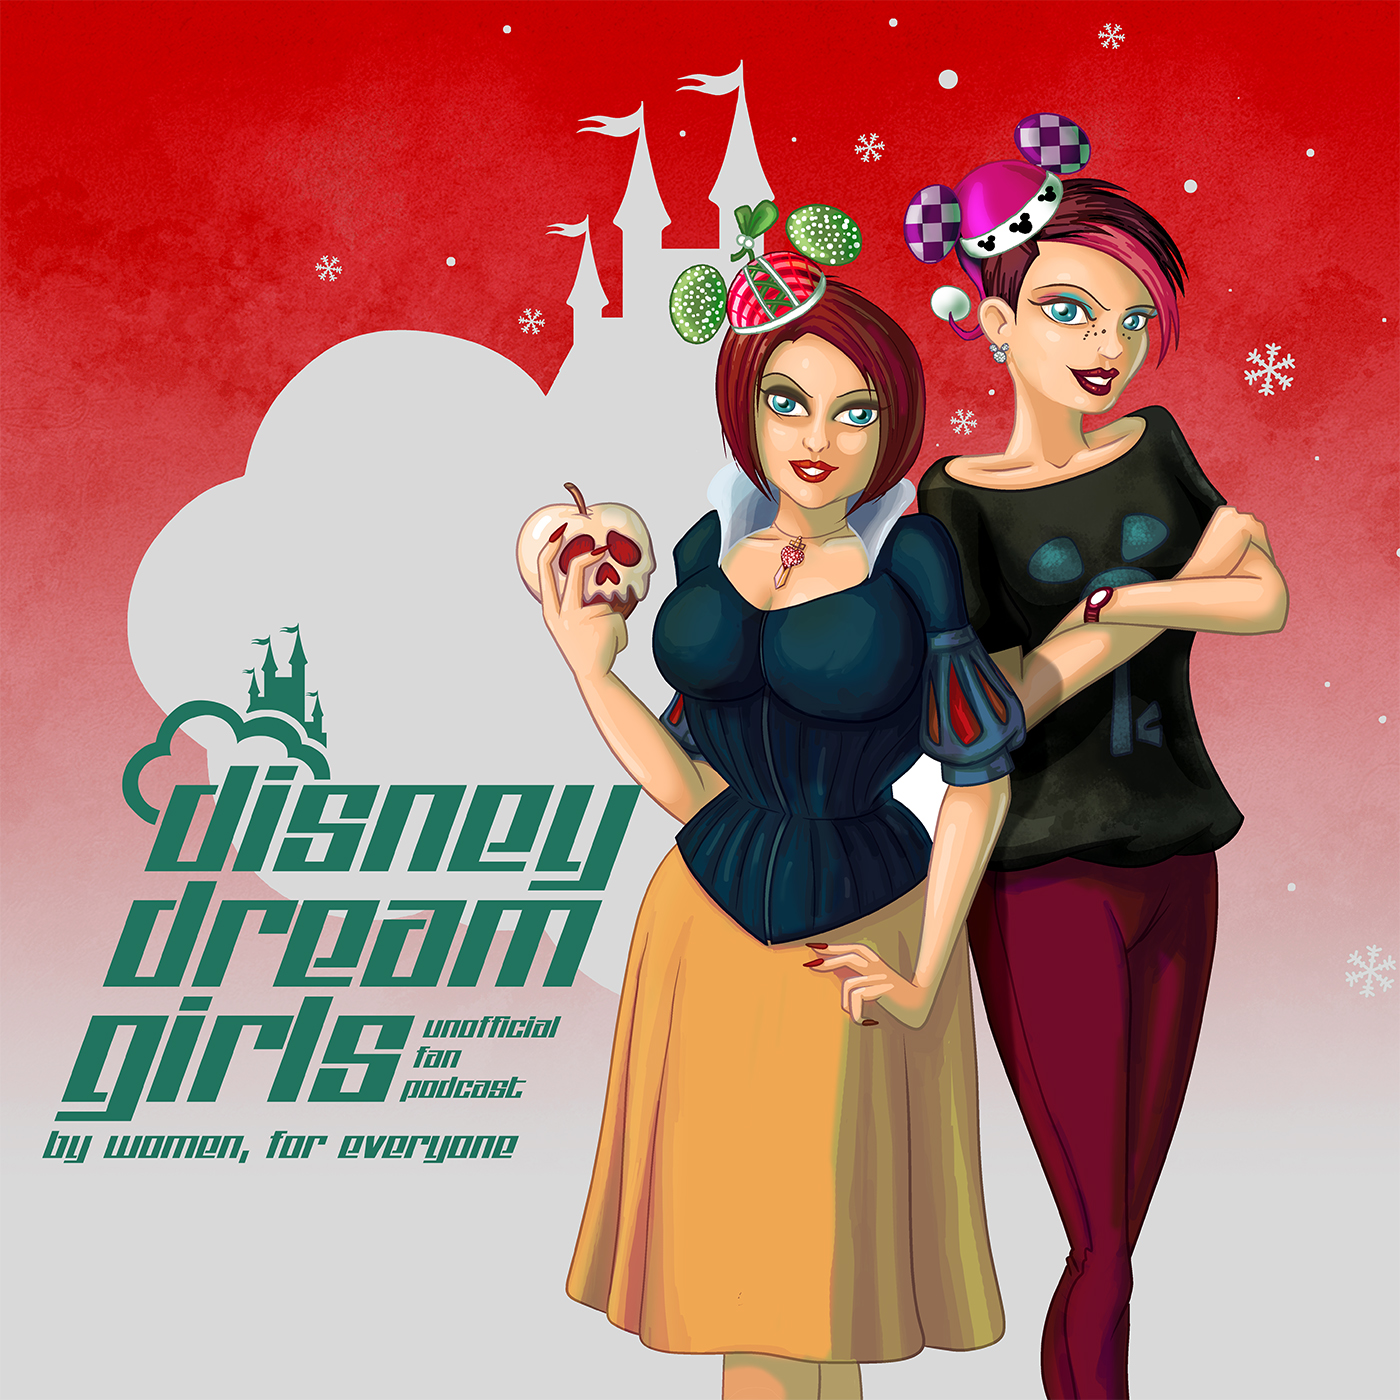 Disney Dream Girls 076 - Minxmas with WDW Happy Place Podcast